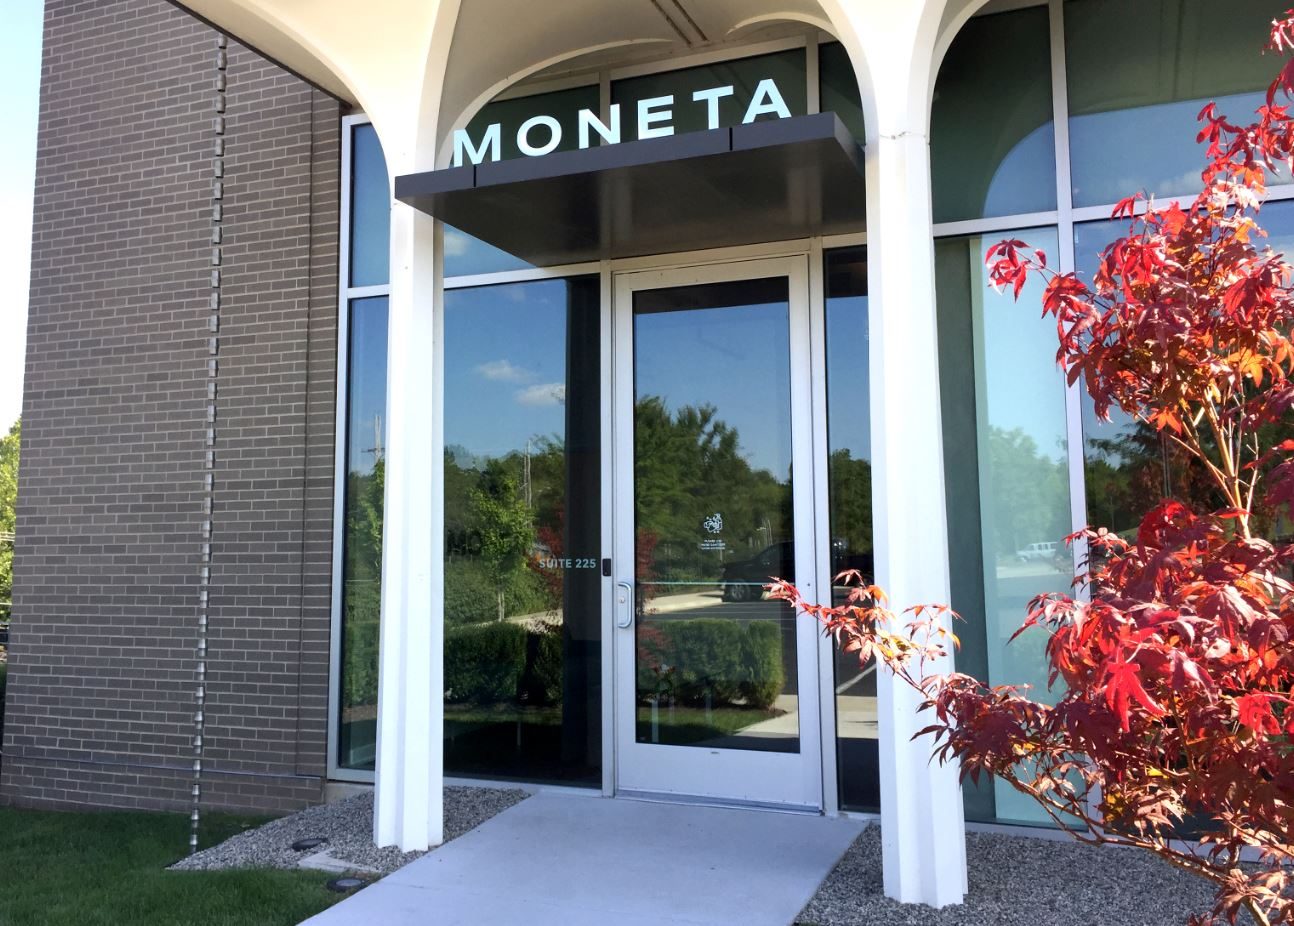 Moneta financial advisors Kansas City office